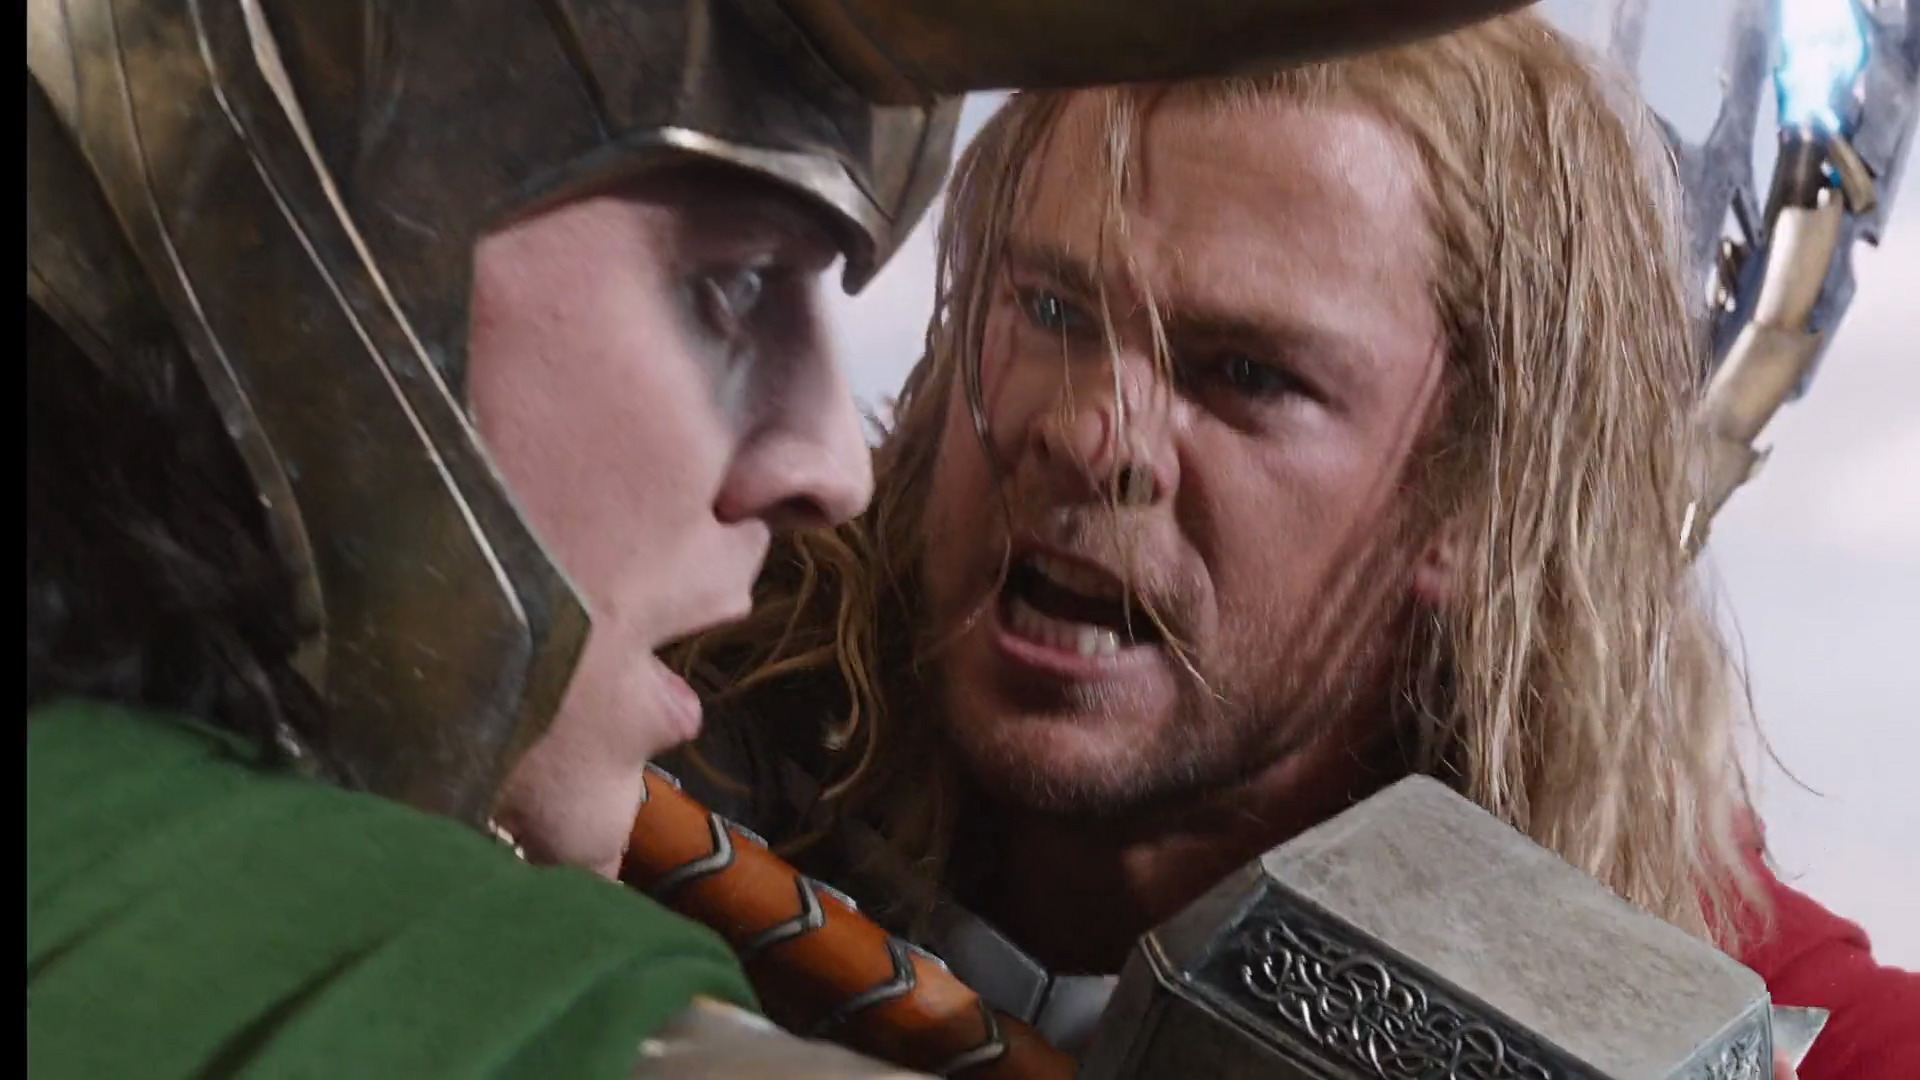 http://www.caps.media/201/2-avengers/full/avengers-movie-screencaps.com-12709.jpg